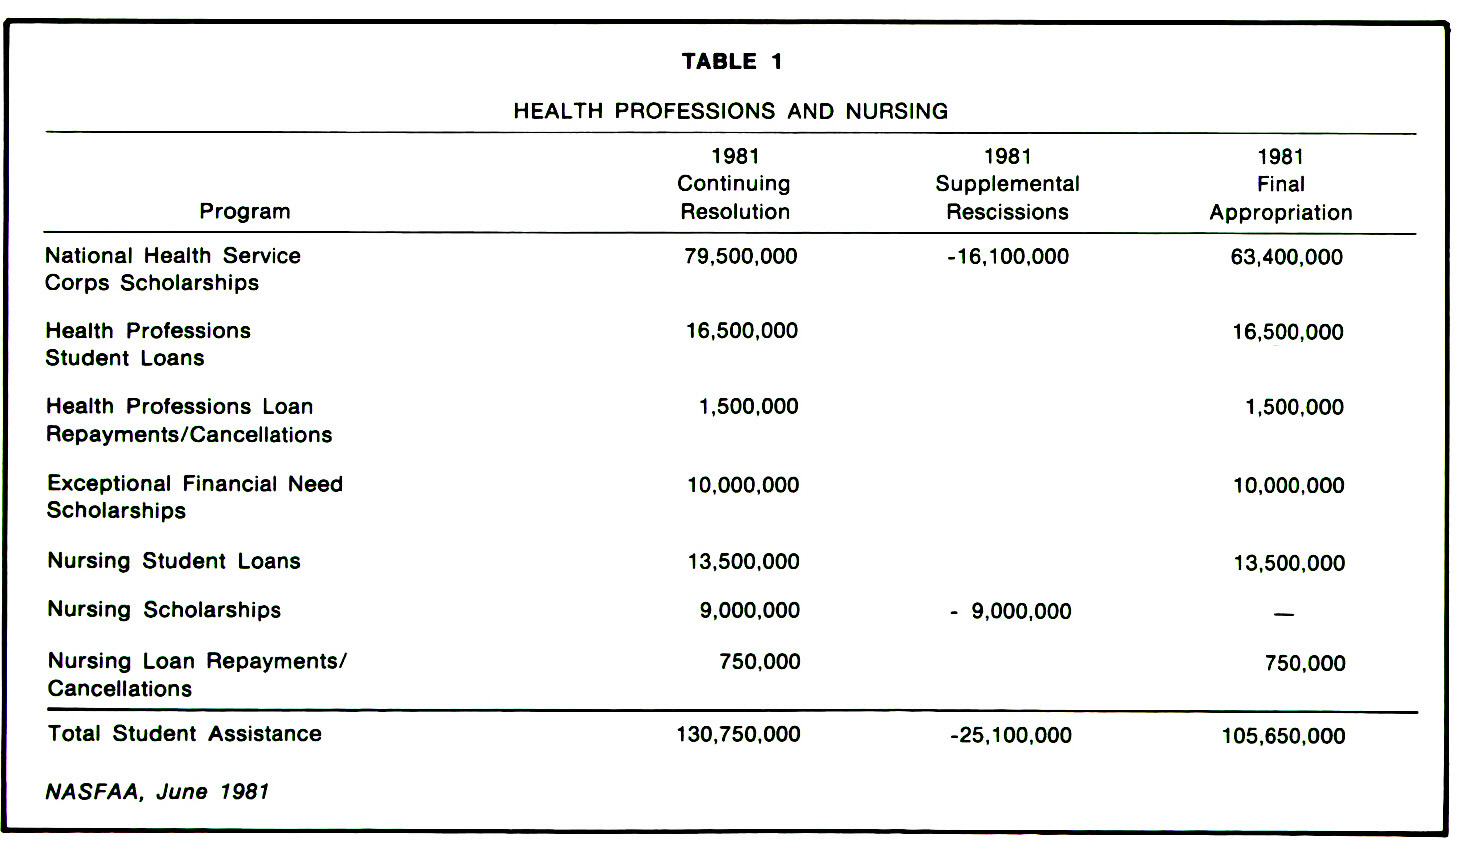 TABLE 1HEALTH PROFESSIONS AND NURSING